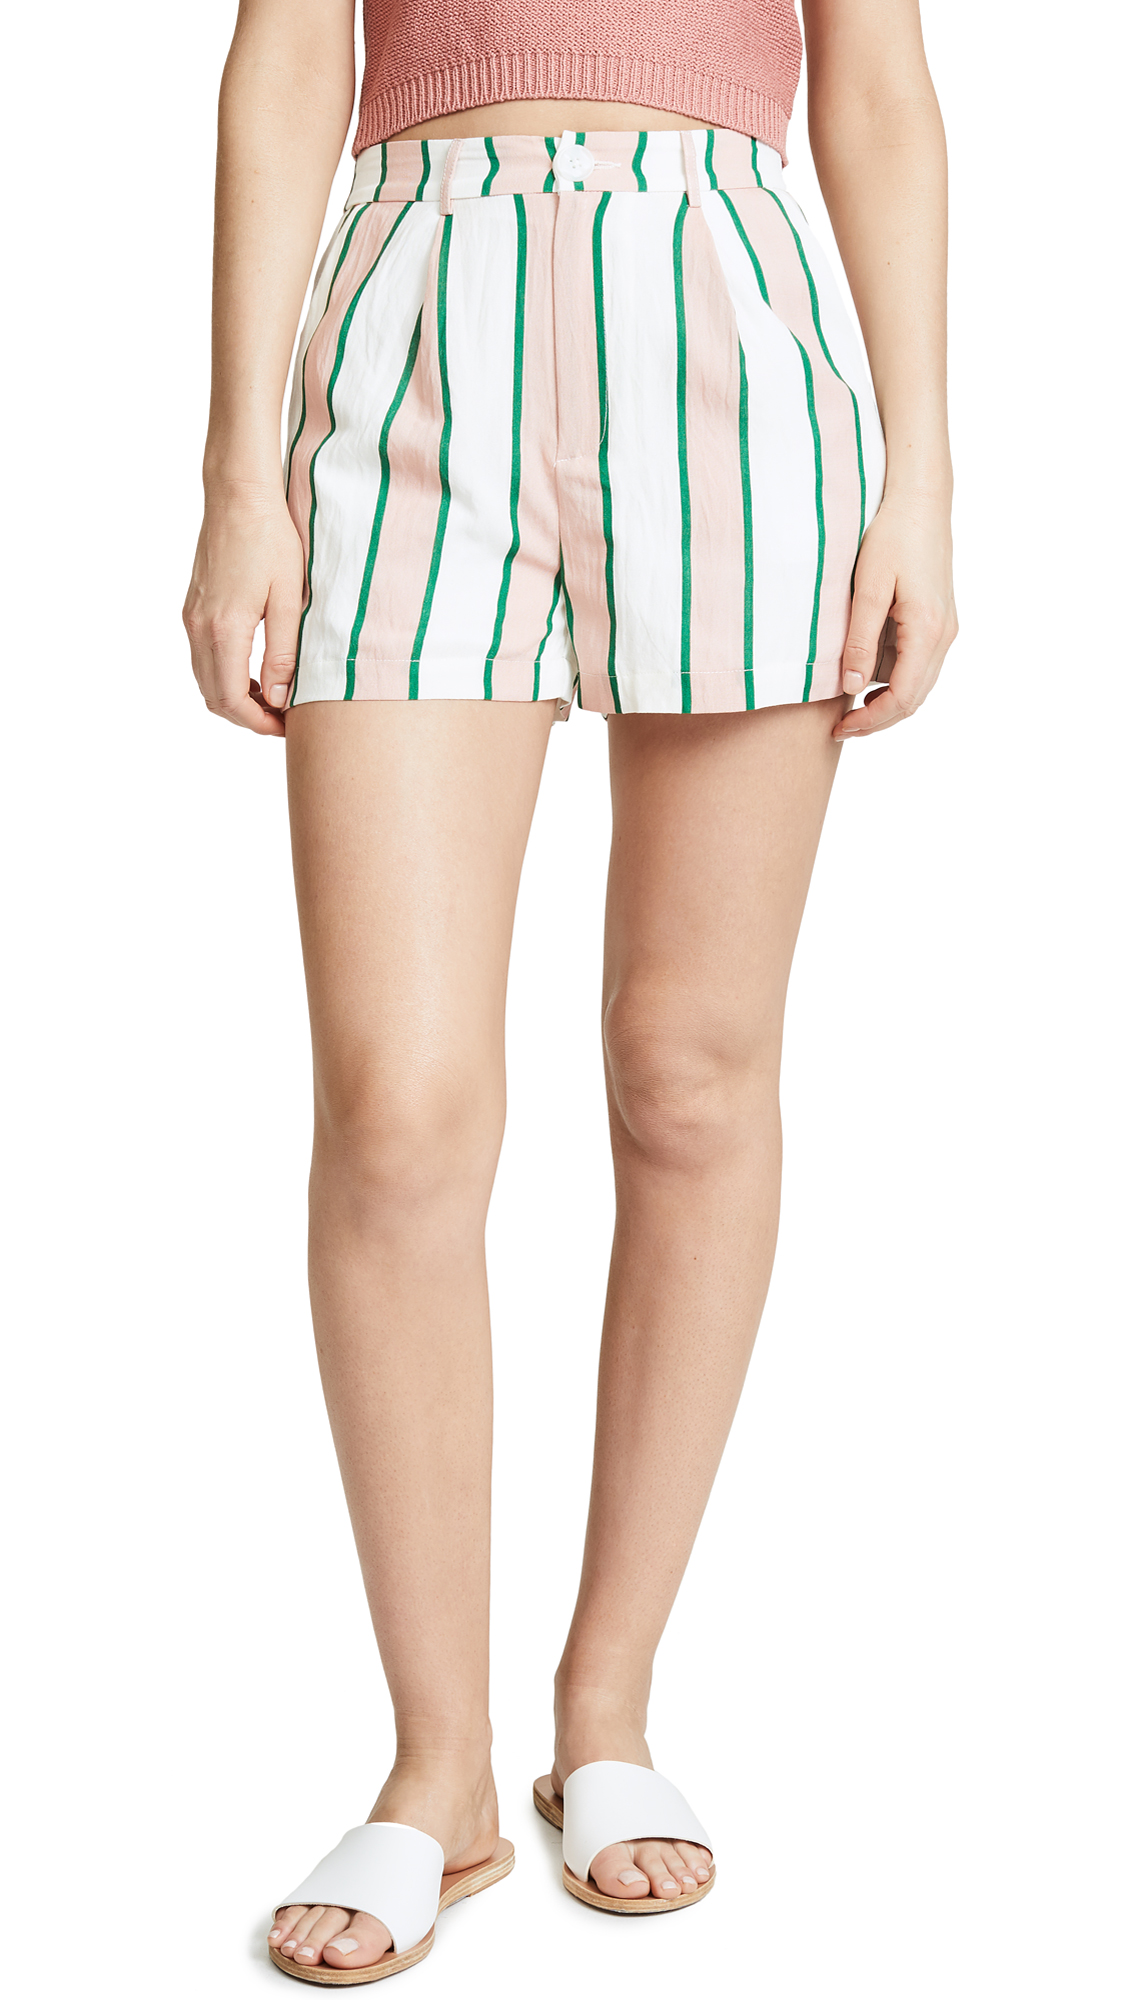 ENGLISH FACTORY Pleated Shorts - Pink/Emerald